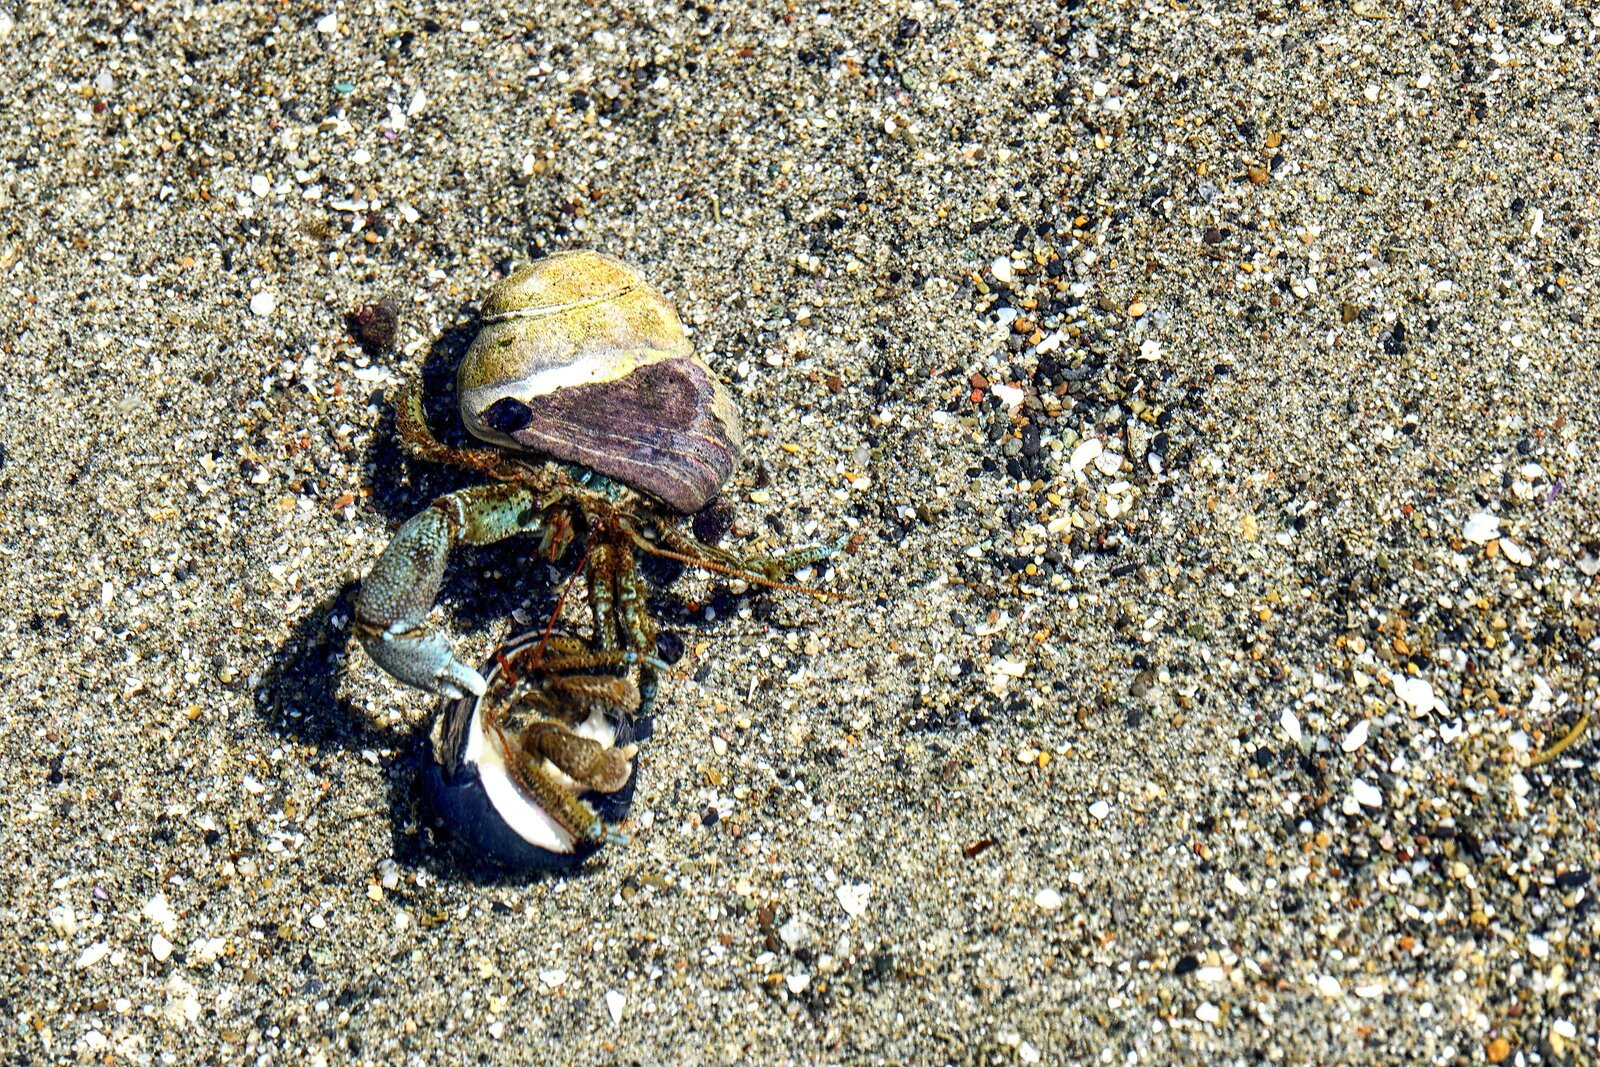 RX10_May18_21_2_hermit_crabs#1.jpg